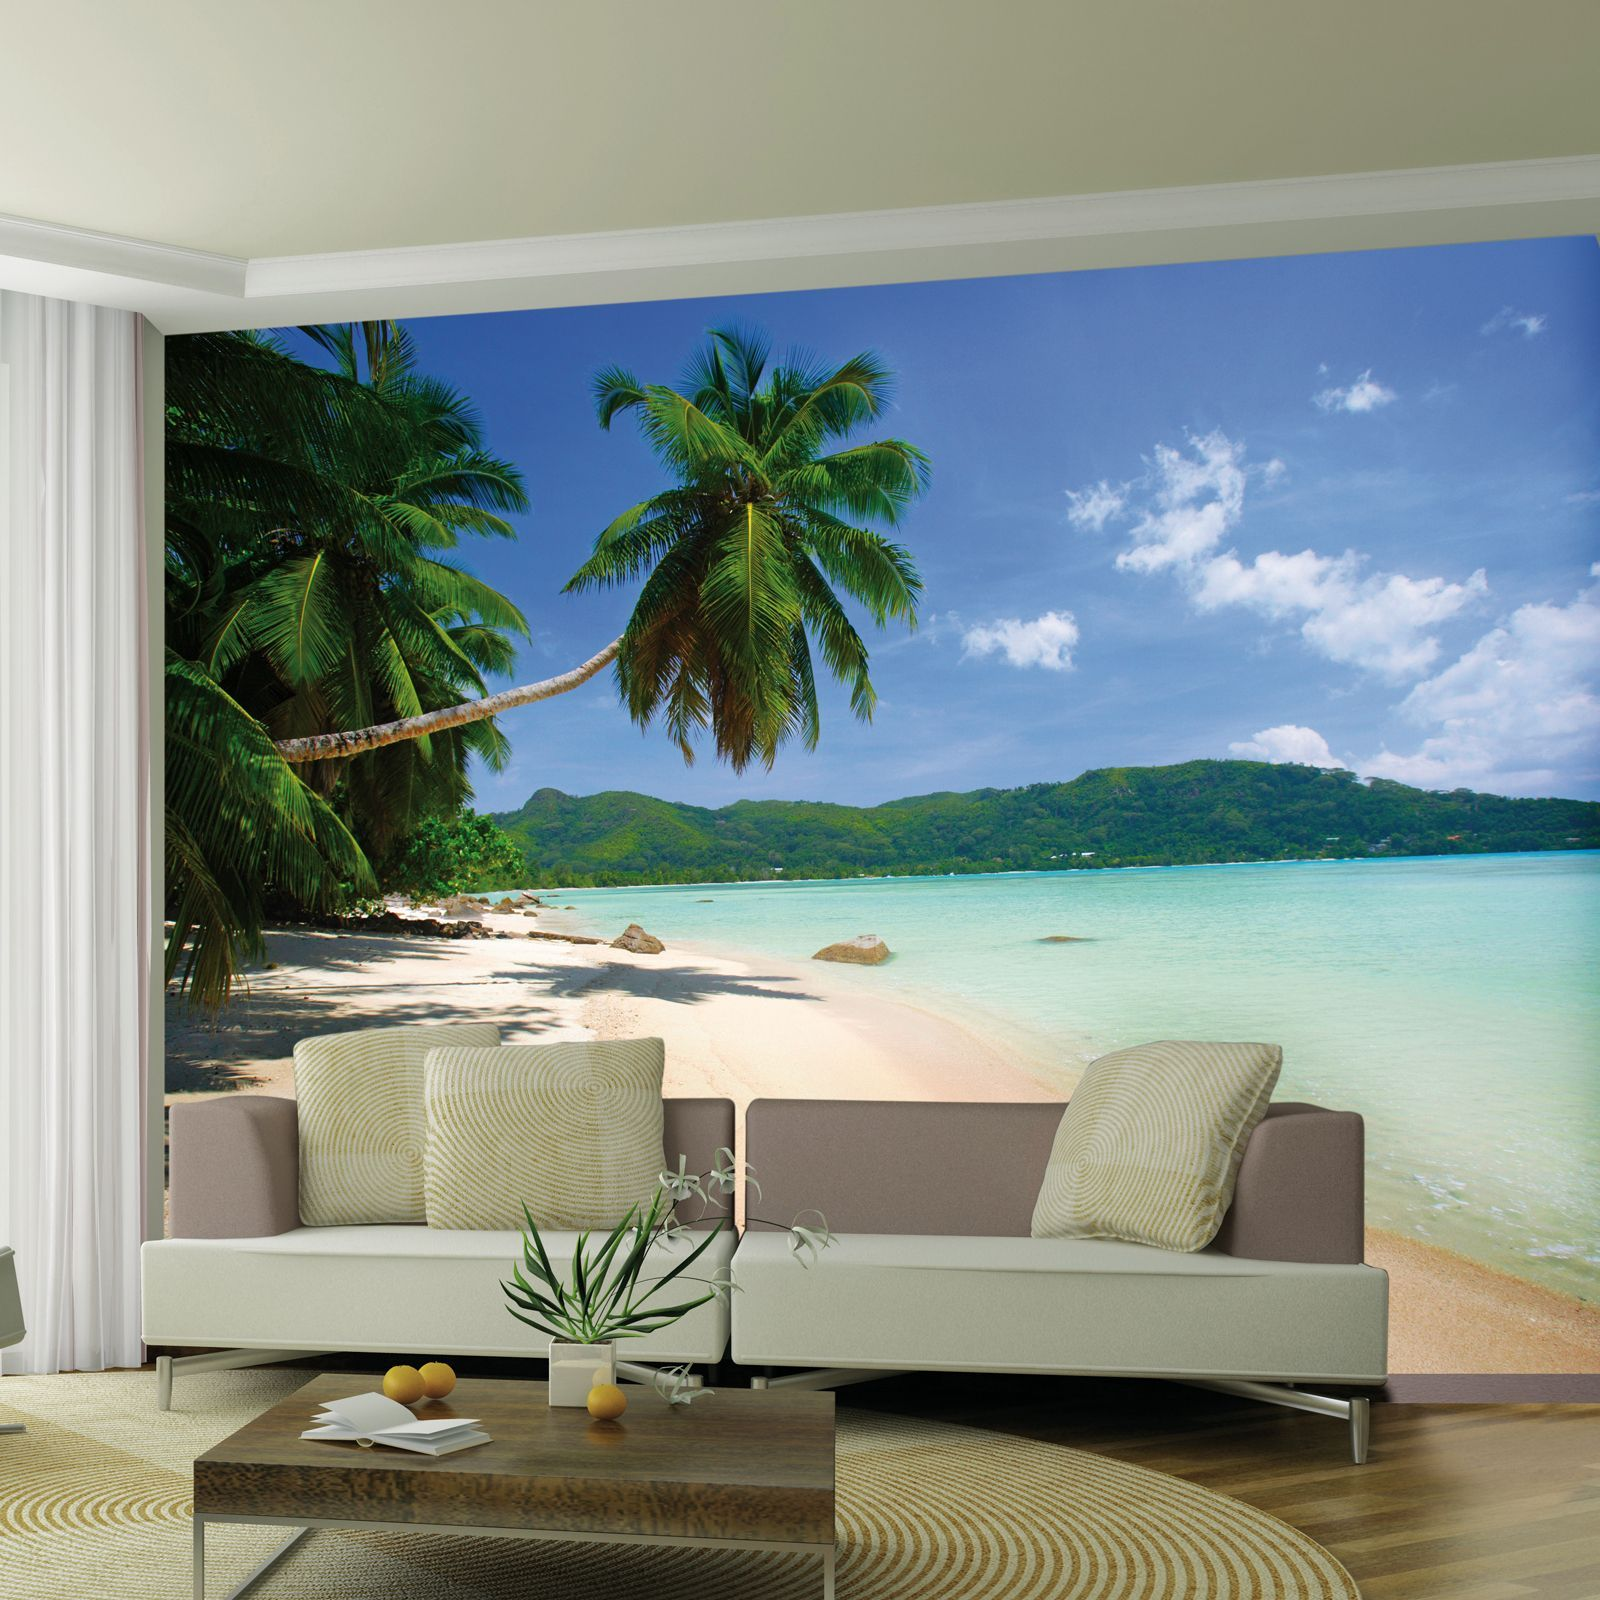 large wallpaper feature wall murals landscapes landmarks cities. Black Bedroom Furniture Sets. Home Design Ideas